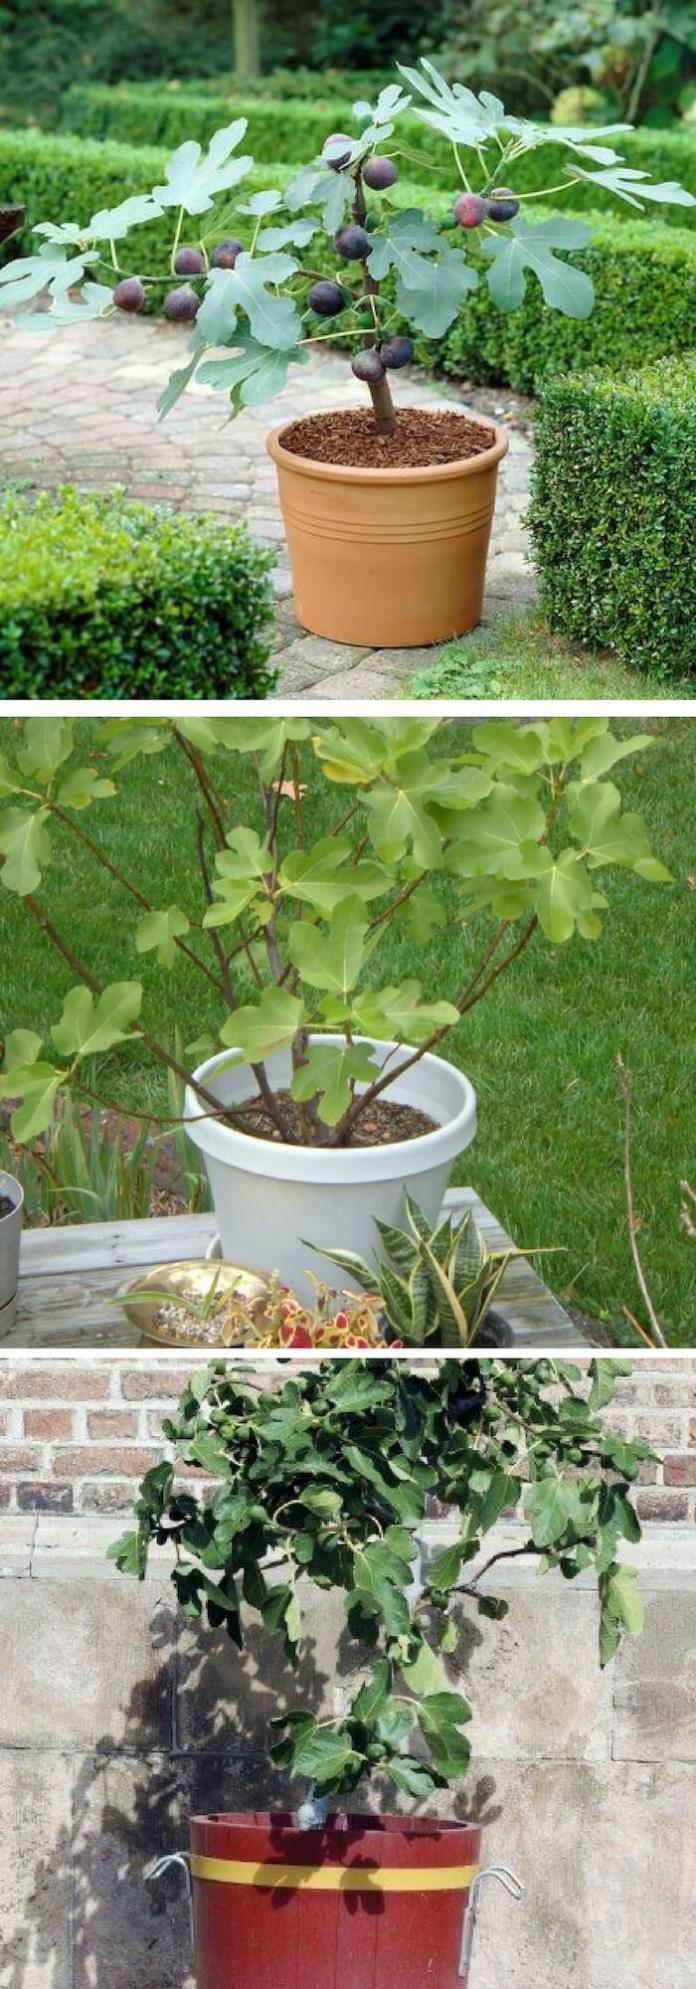 How to grow fig trees in containers